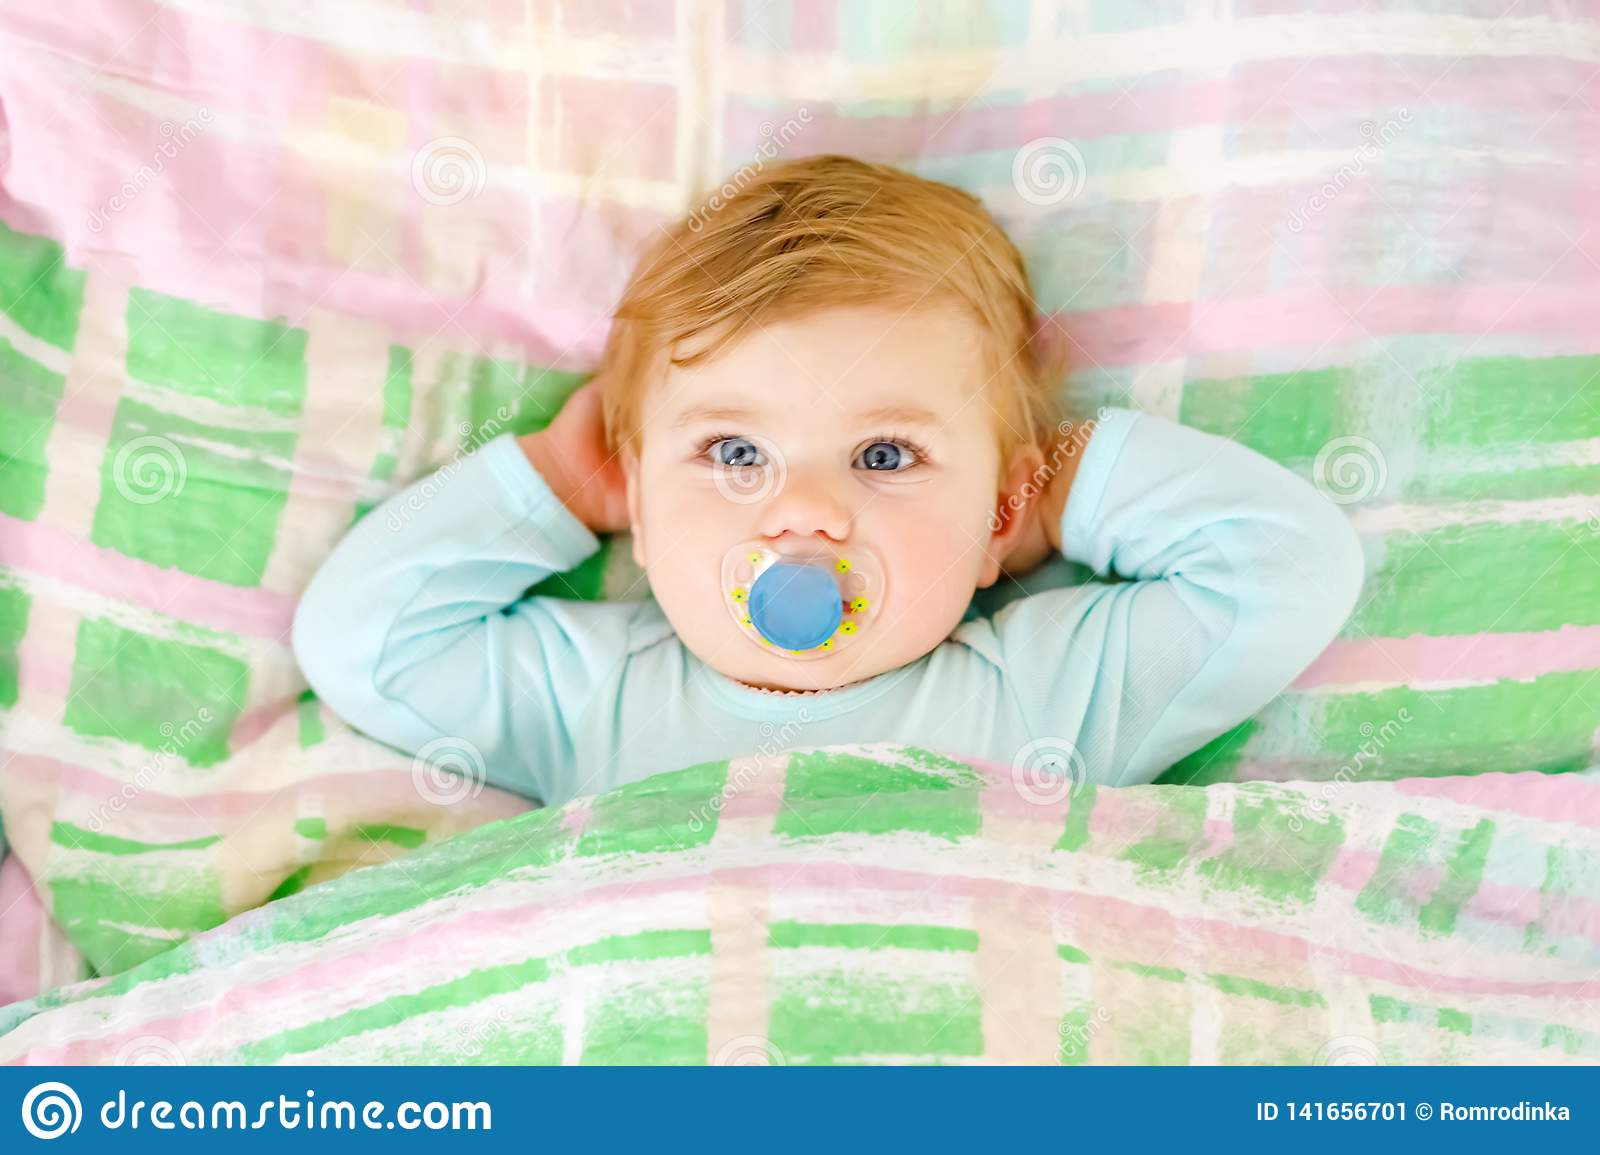 Adorable little baby girl sleeping in bed. Calm peaceful child dreaming during day sleep. Beautiful baby in parents bed